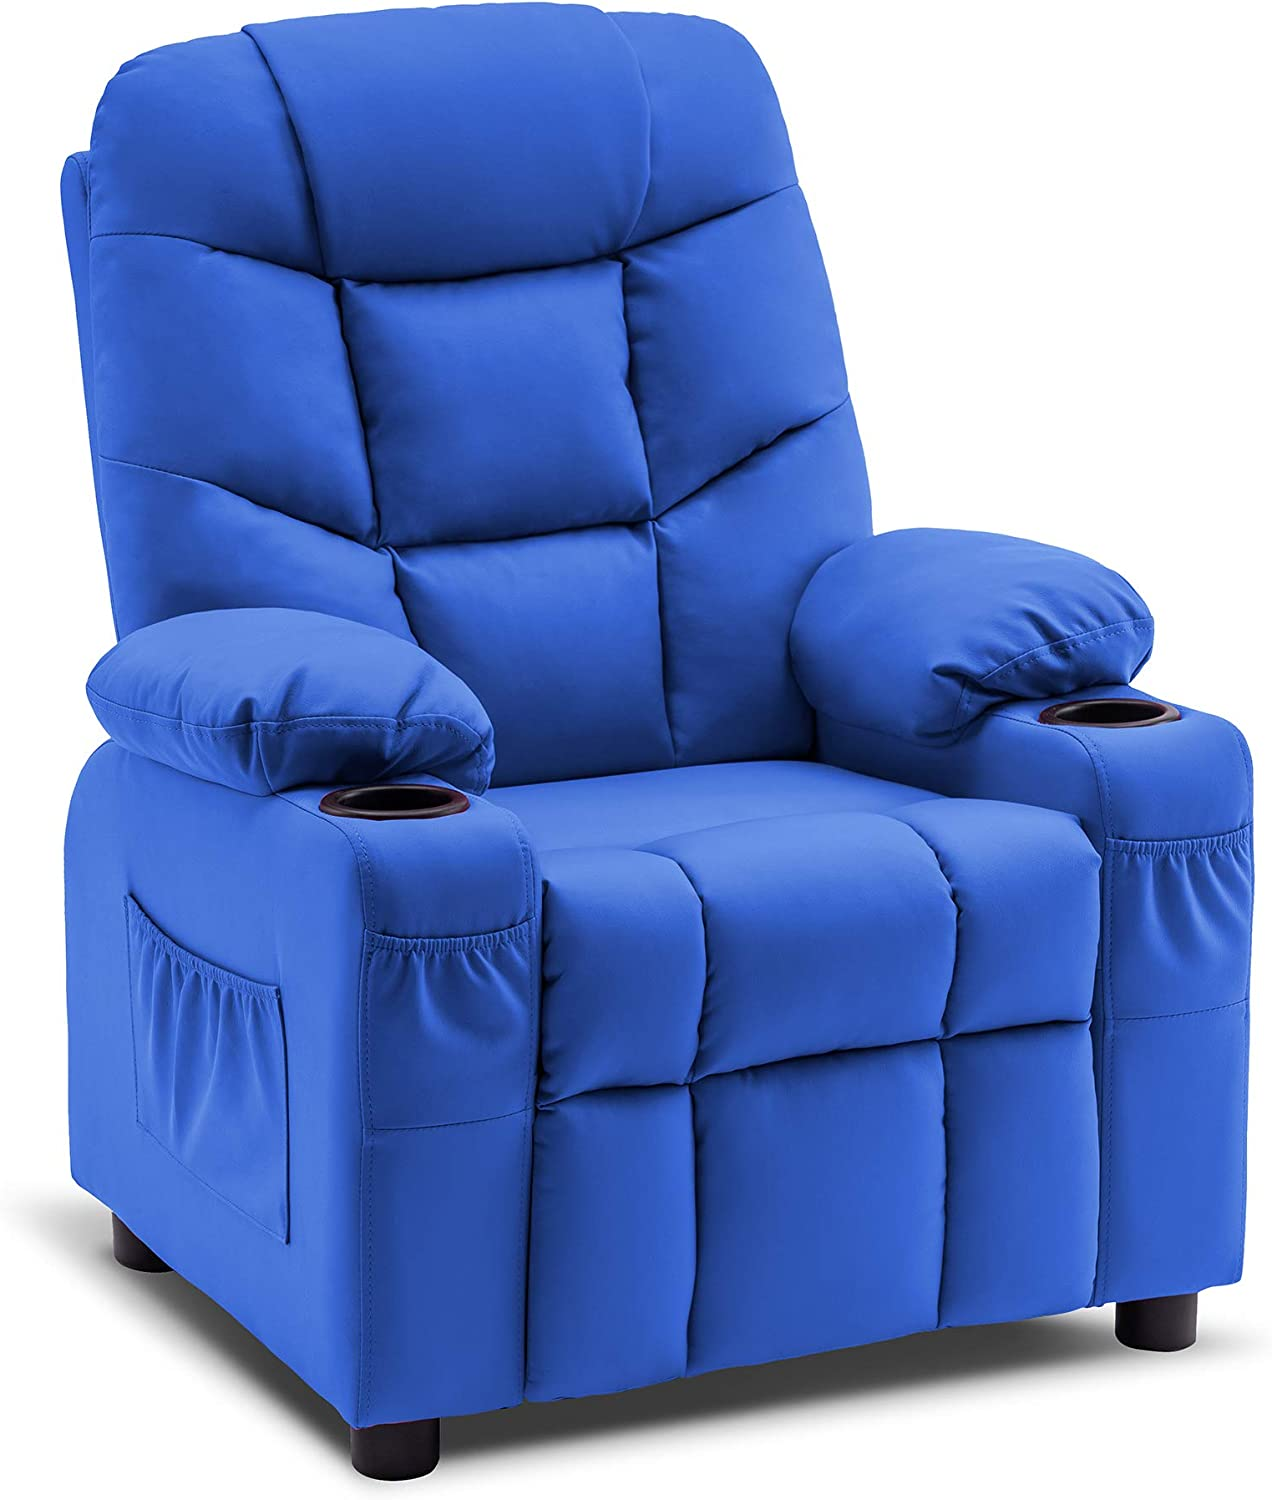 Mcombo Big Kids Recliner Chair with Cup Holders for Boys and Girls Room, 2 Side Pockets, 3+ Age Group, Faux Leather 7366 (Blue)